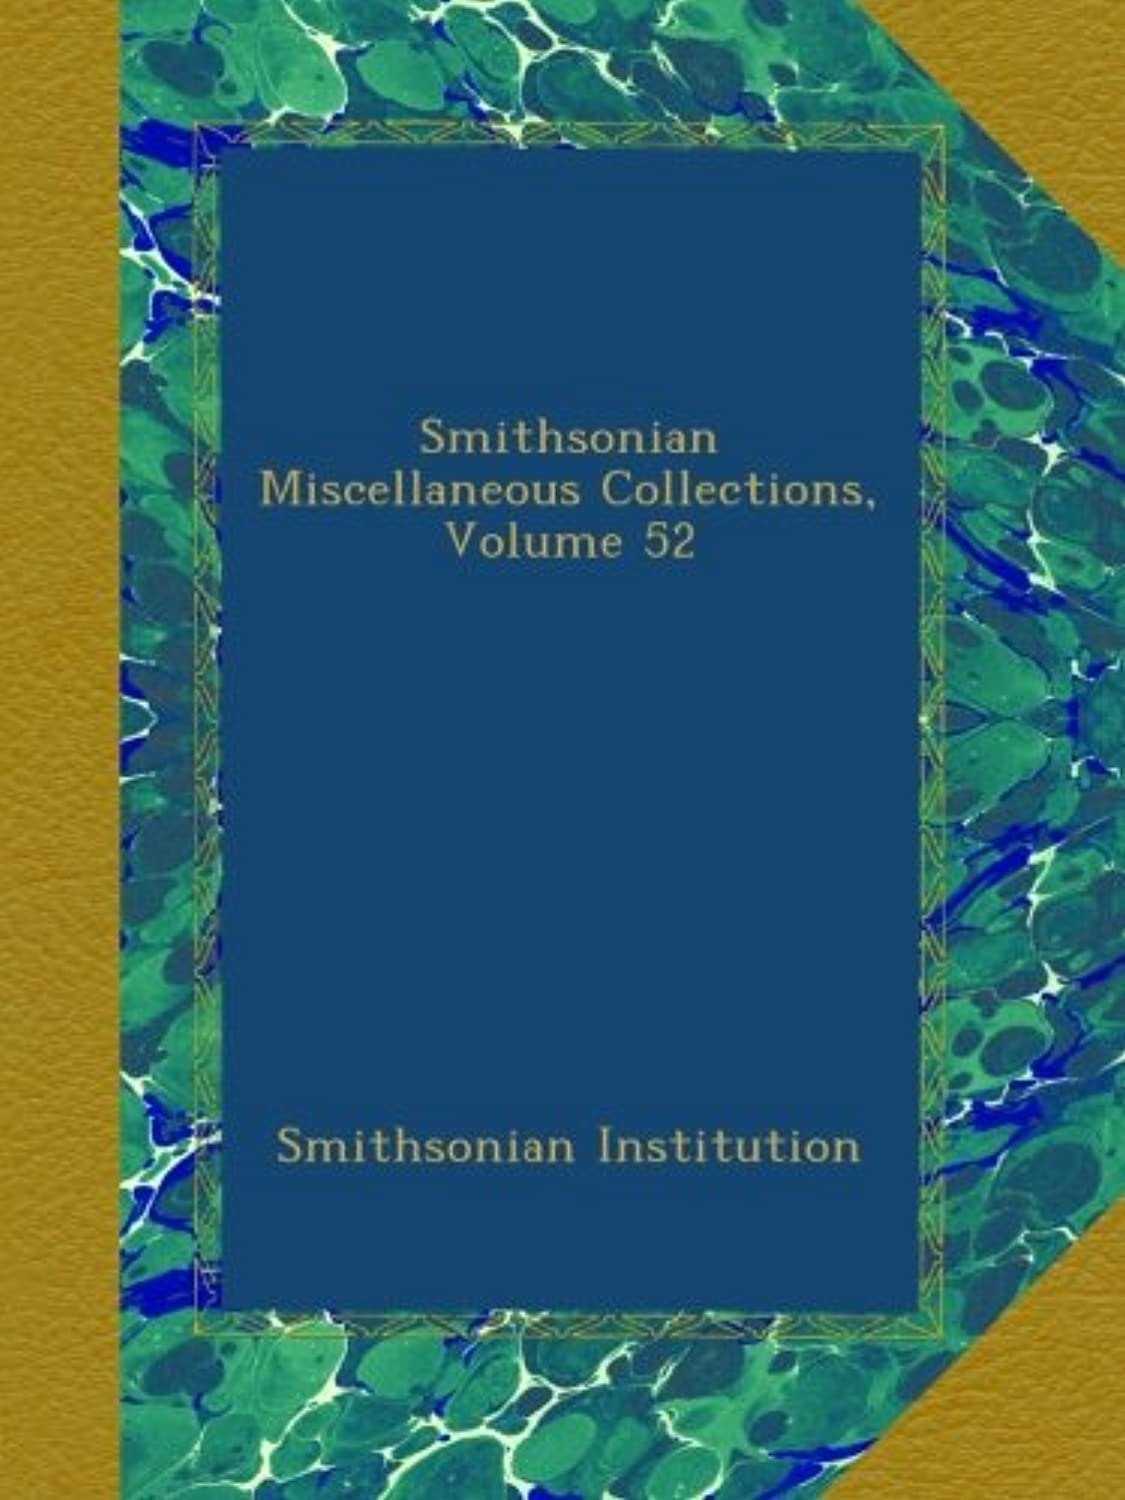 Smithsonian Miscellaneous Collections, Volume 52